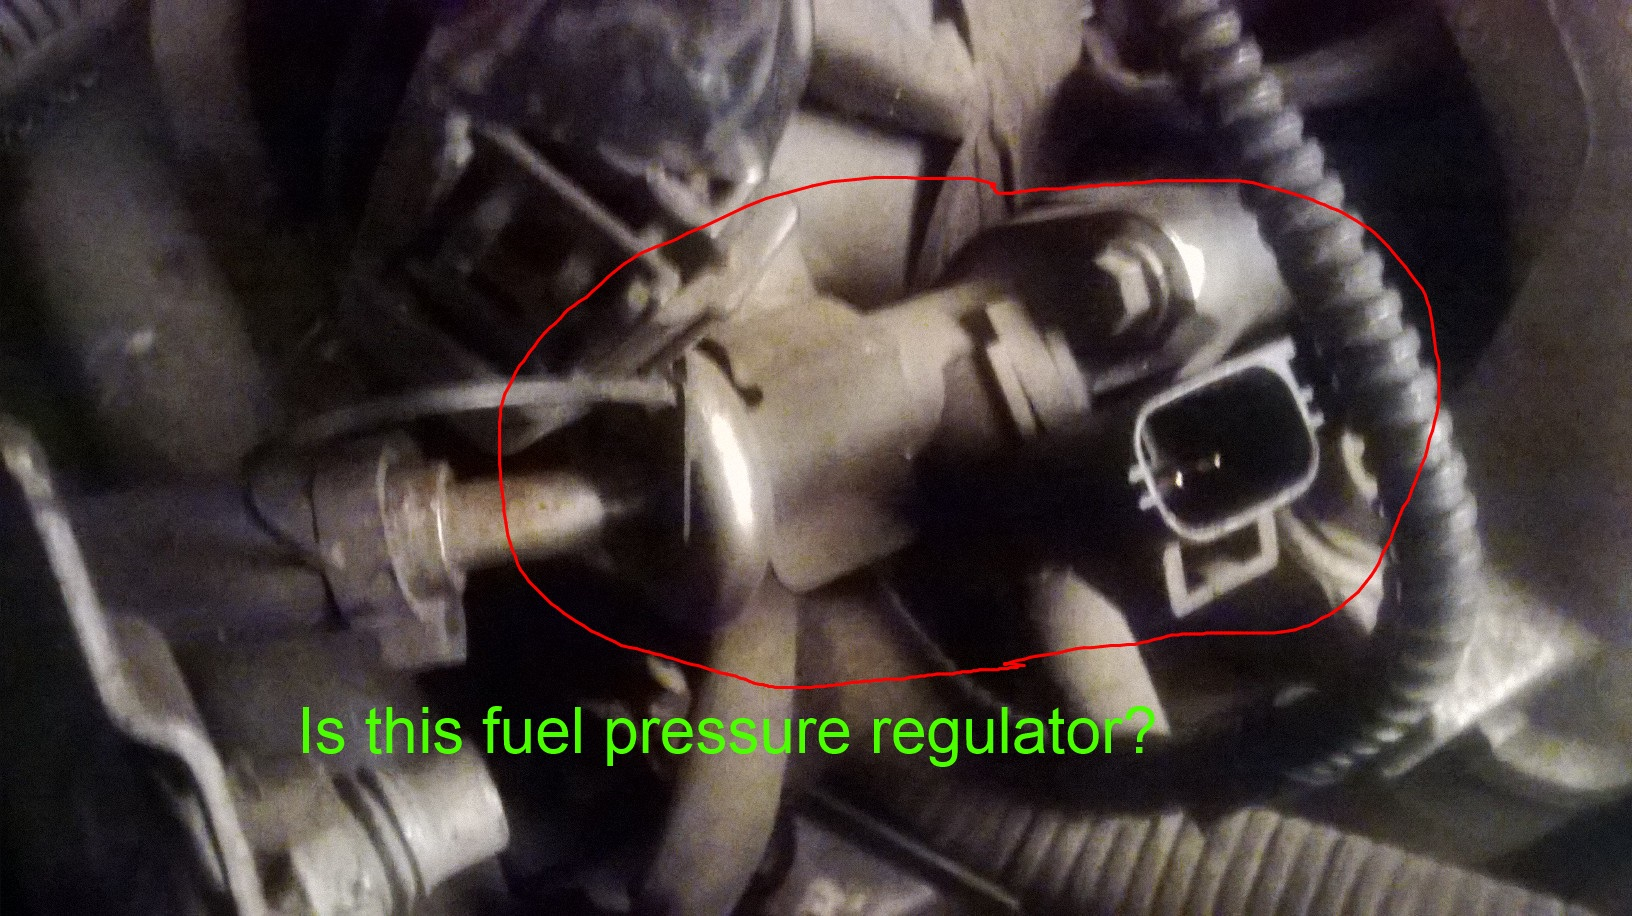 Steering Vacuum Bleed furthermore D Vulcan Location Fuel Schrader Valve Fuel Pressure Regulator Wp moreover S L likewise Sscully Albums Diagrams My Picture Evtm Power Window in addition Dpfe. on sable fuel regulator location